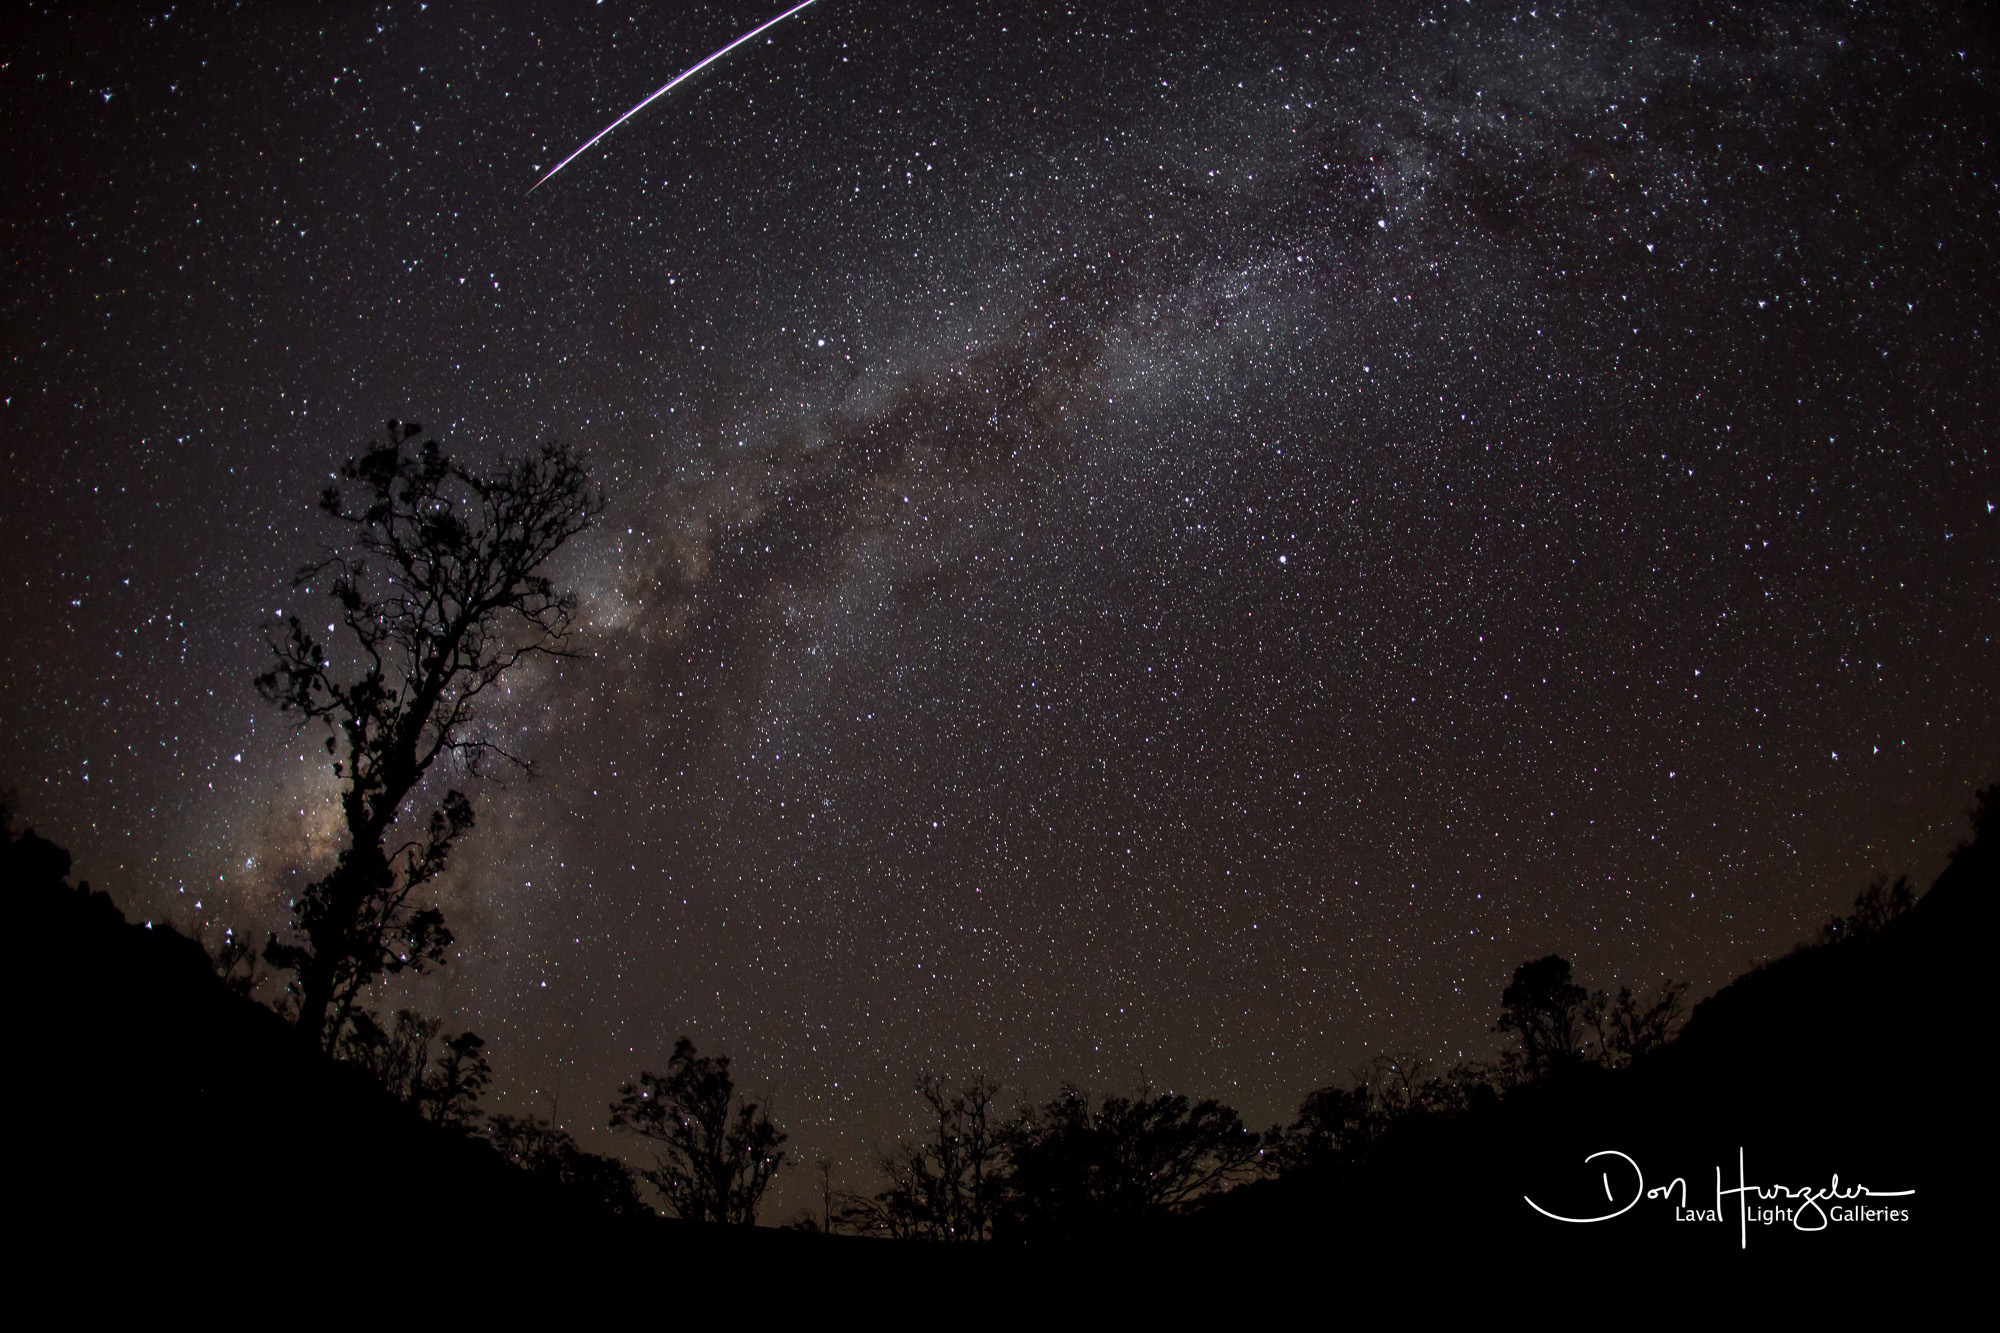 Four meteors, one satellite, two vents of the volcano and the Milky Way.